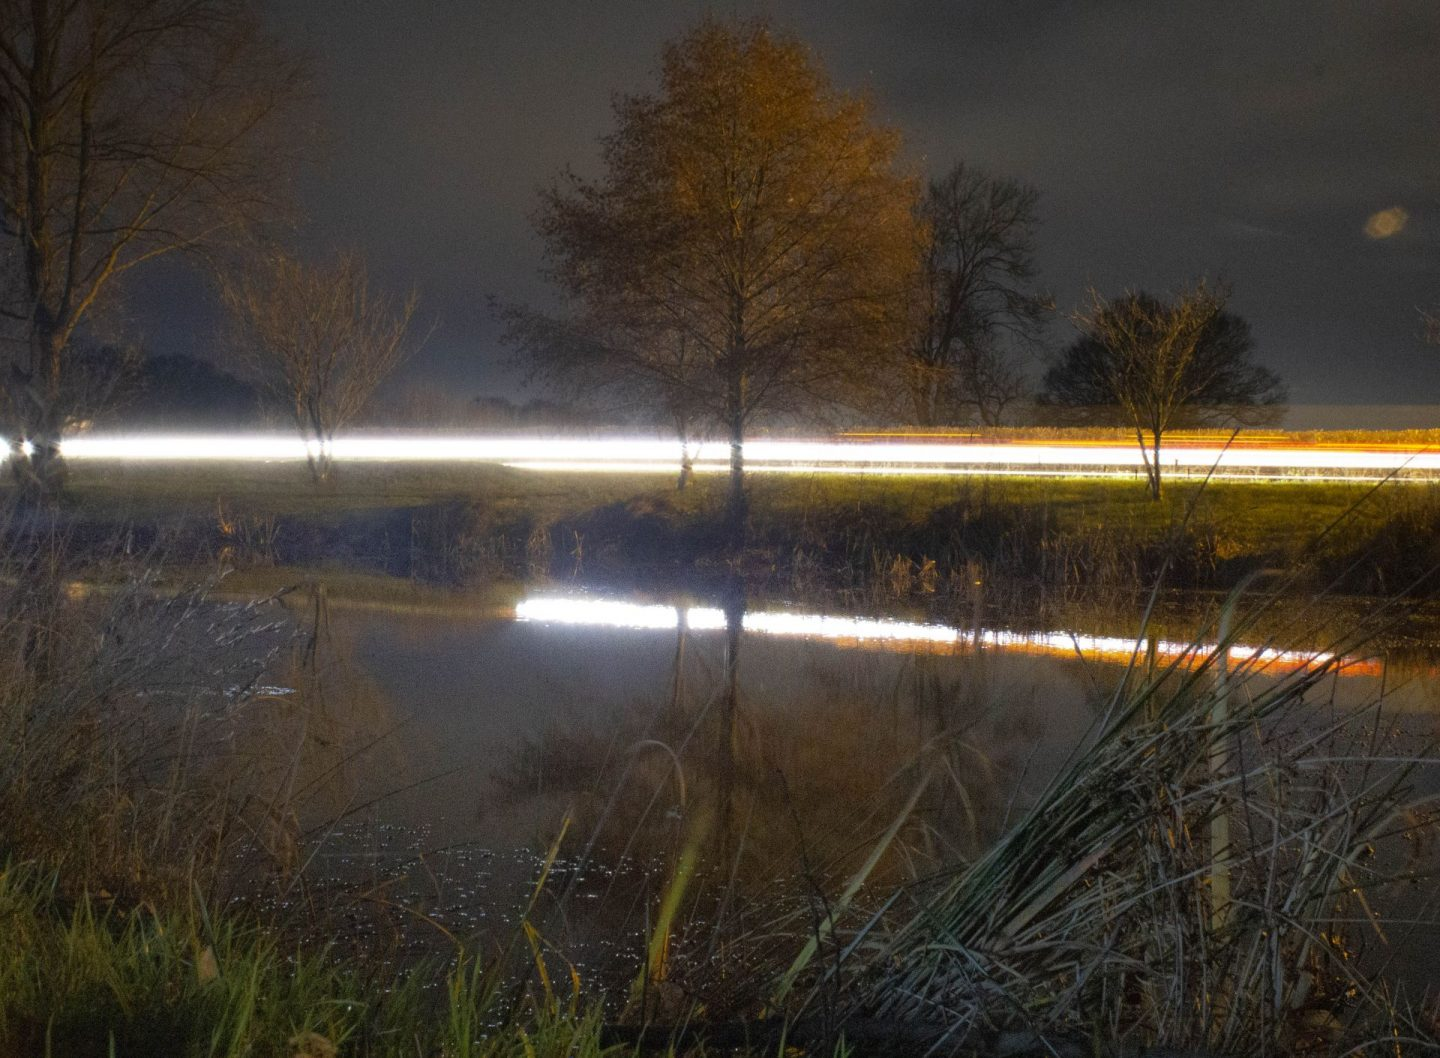 Experimental long-exposure image of car reflected in a pond.